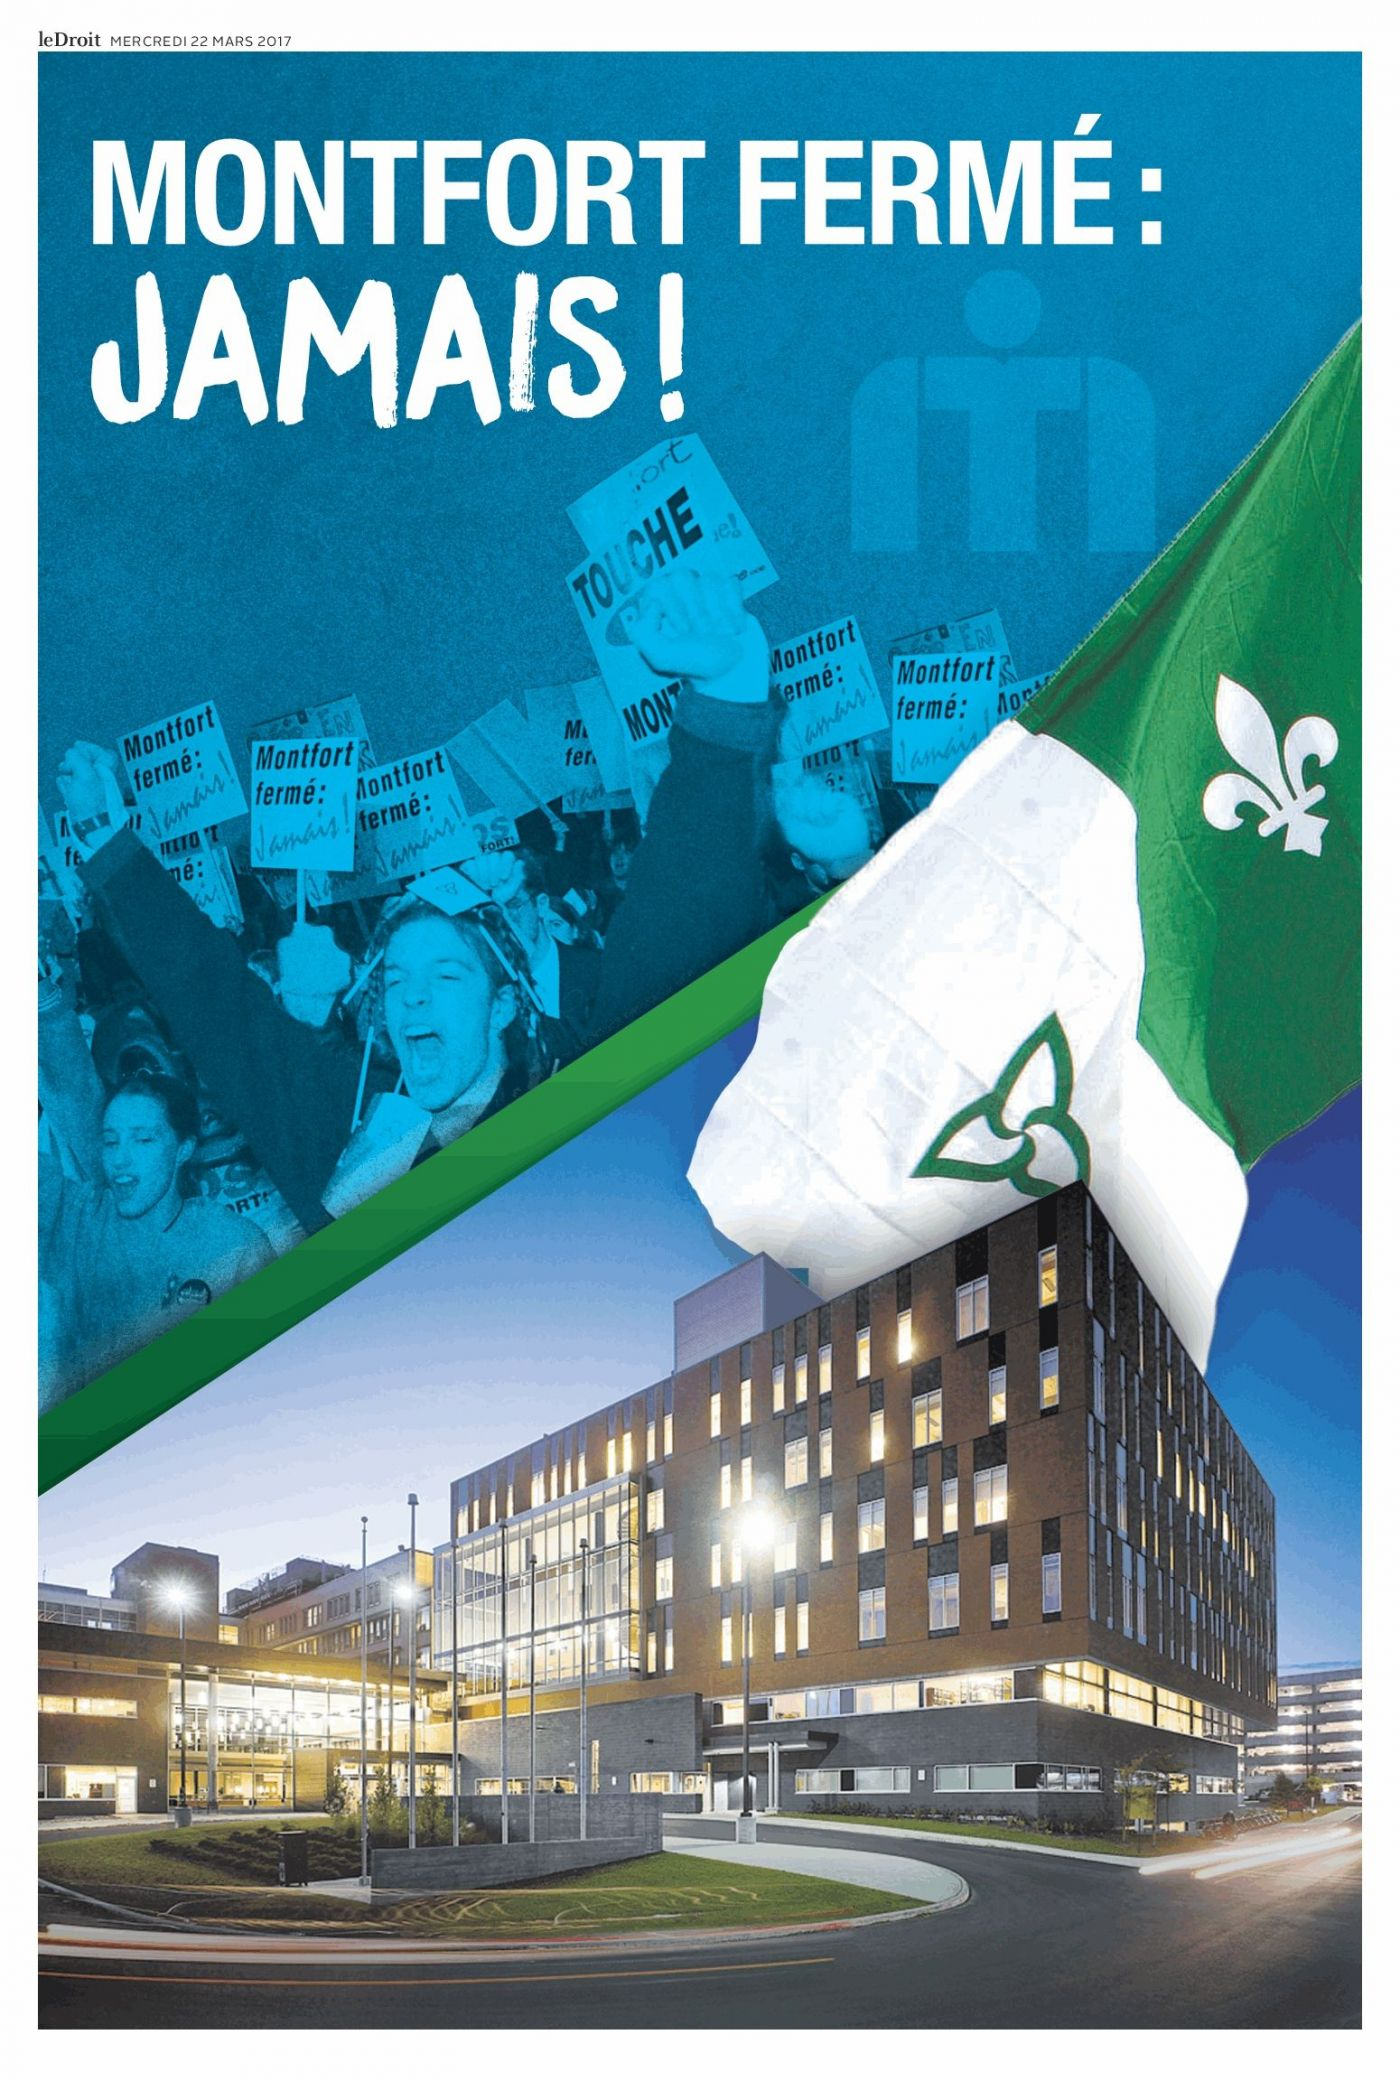 """Colour poster divided into two sections by a slanting green line ending with a Franco-Ontarian flag at right end. The bottom section of the poster depicts a large multi-storey building complex. The top section depicts a crowd demonstrating with placards; the young man in the foreground has both arms raised, his hands in fists. At the top of the poster, the words: """"Montfort fermé : Jamais !""""."""